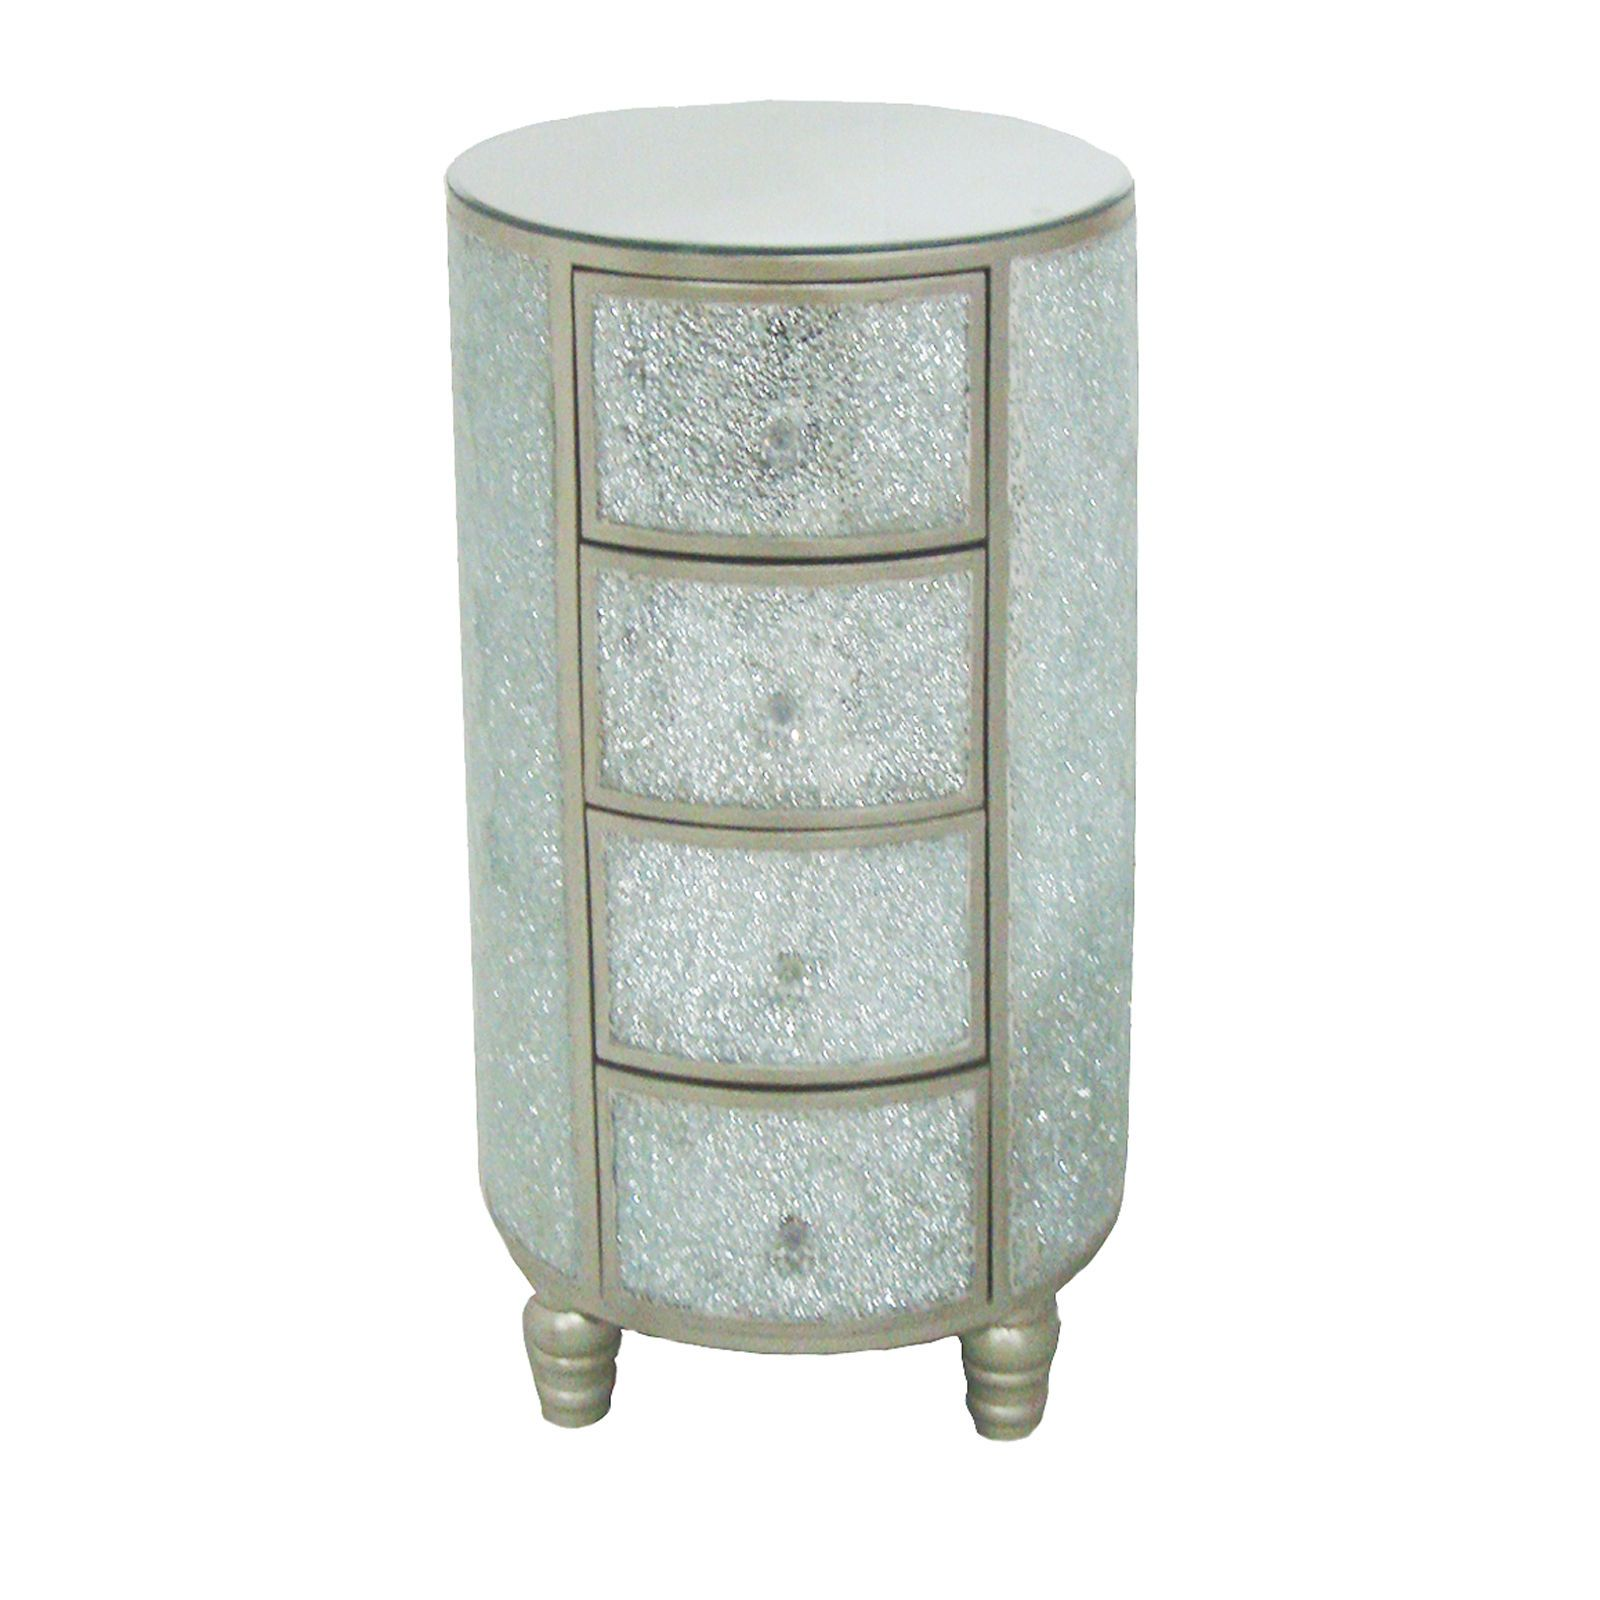 4-Drawer Round Crackled Mirror Cabinet 29-in | Beauty Tips ...